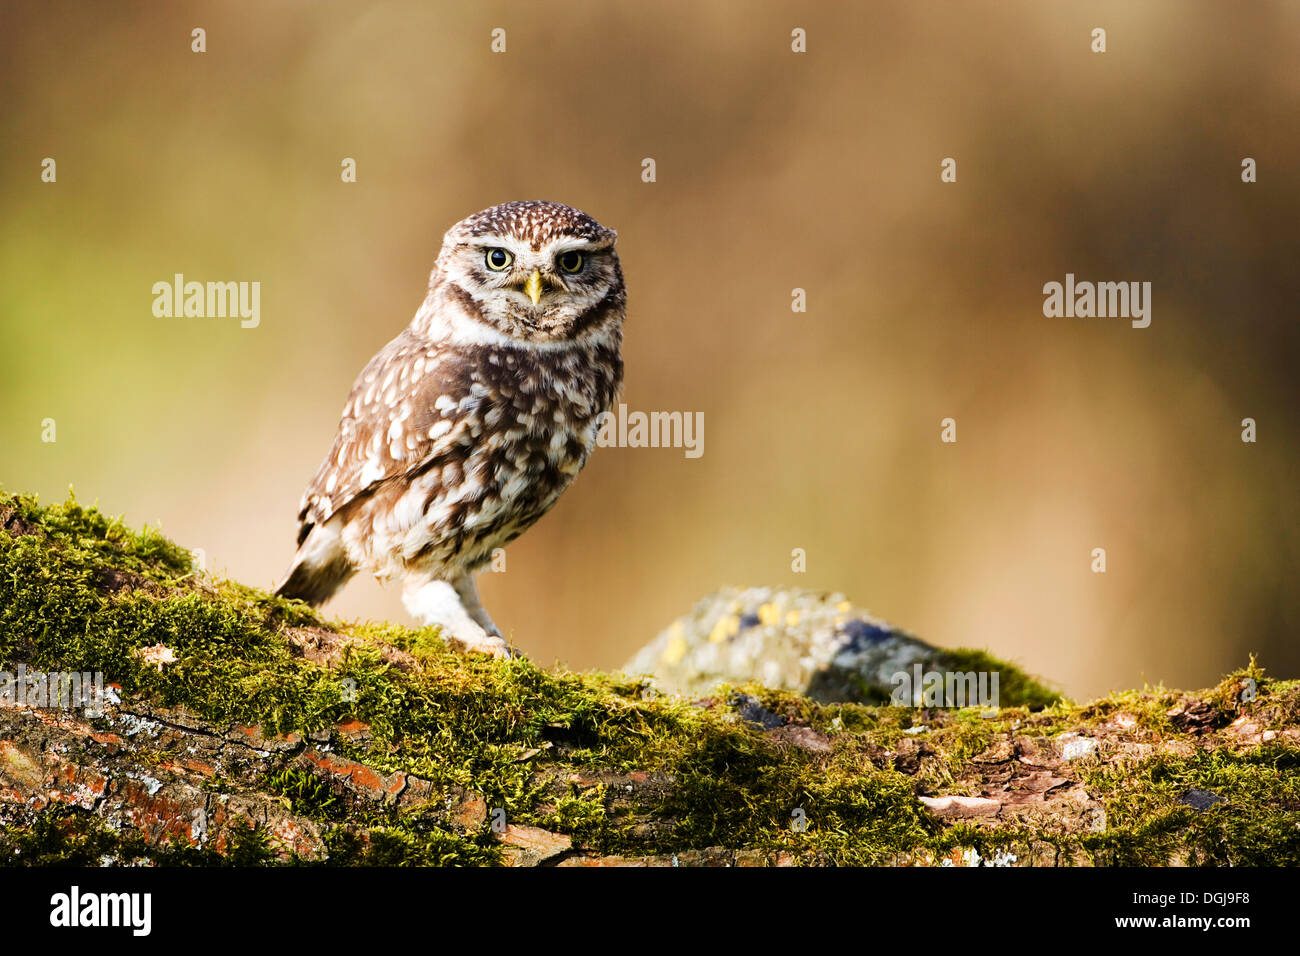 A little owl perched on a mossy bough. - Stock Image